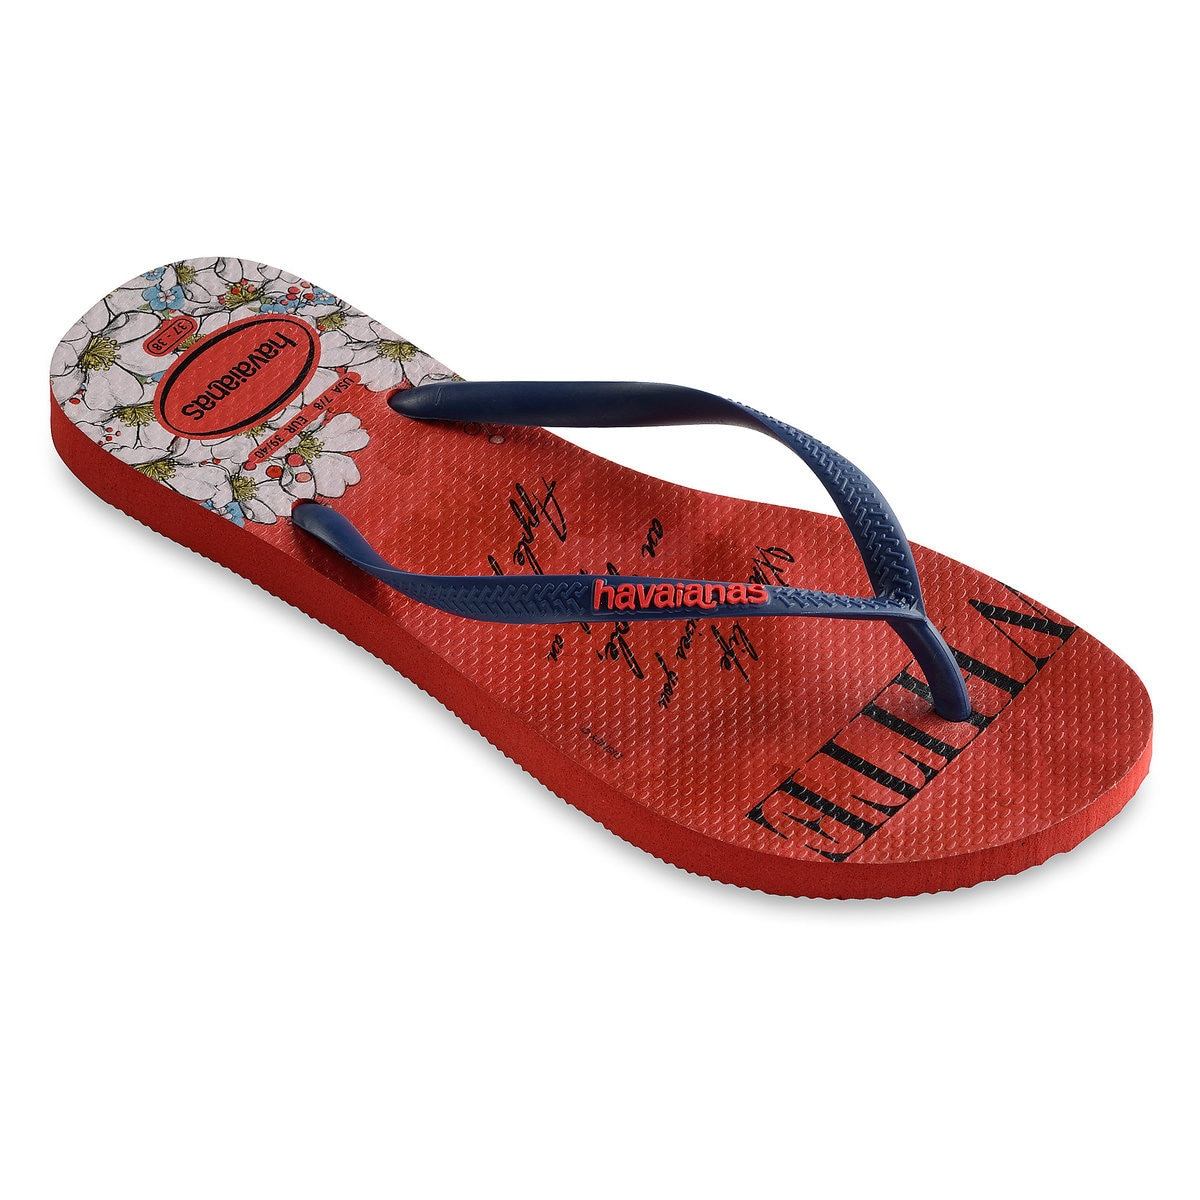 9b6f819ff Product Image of Snow White Flip Flops for Women by Havaianas   1